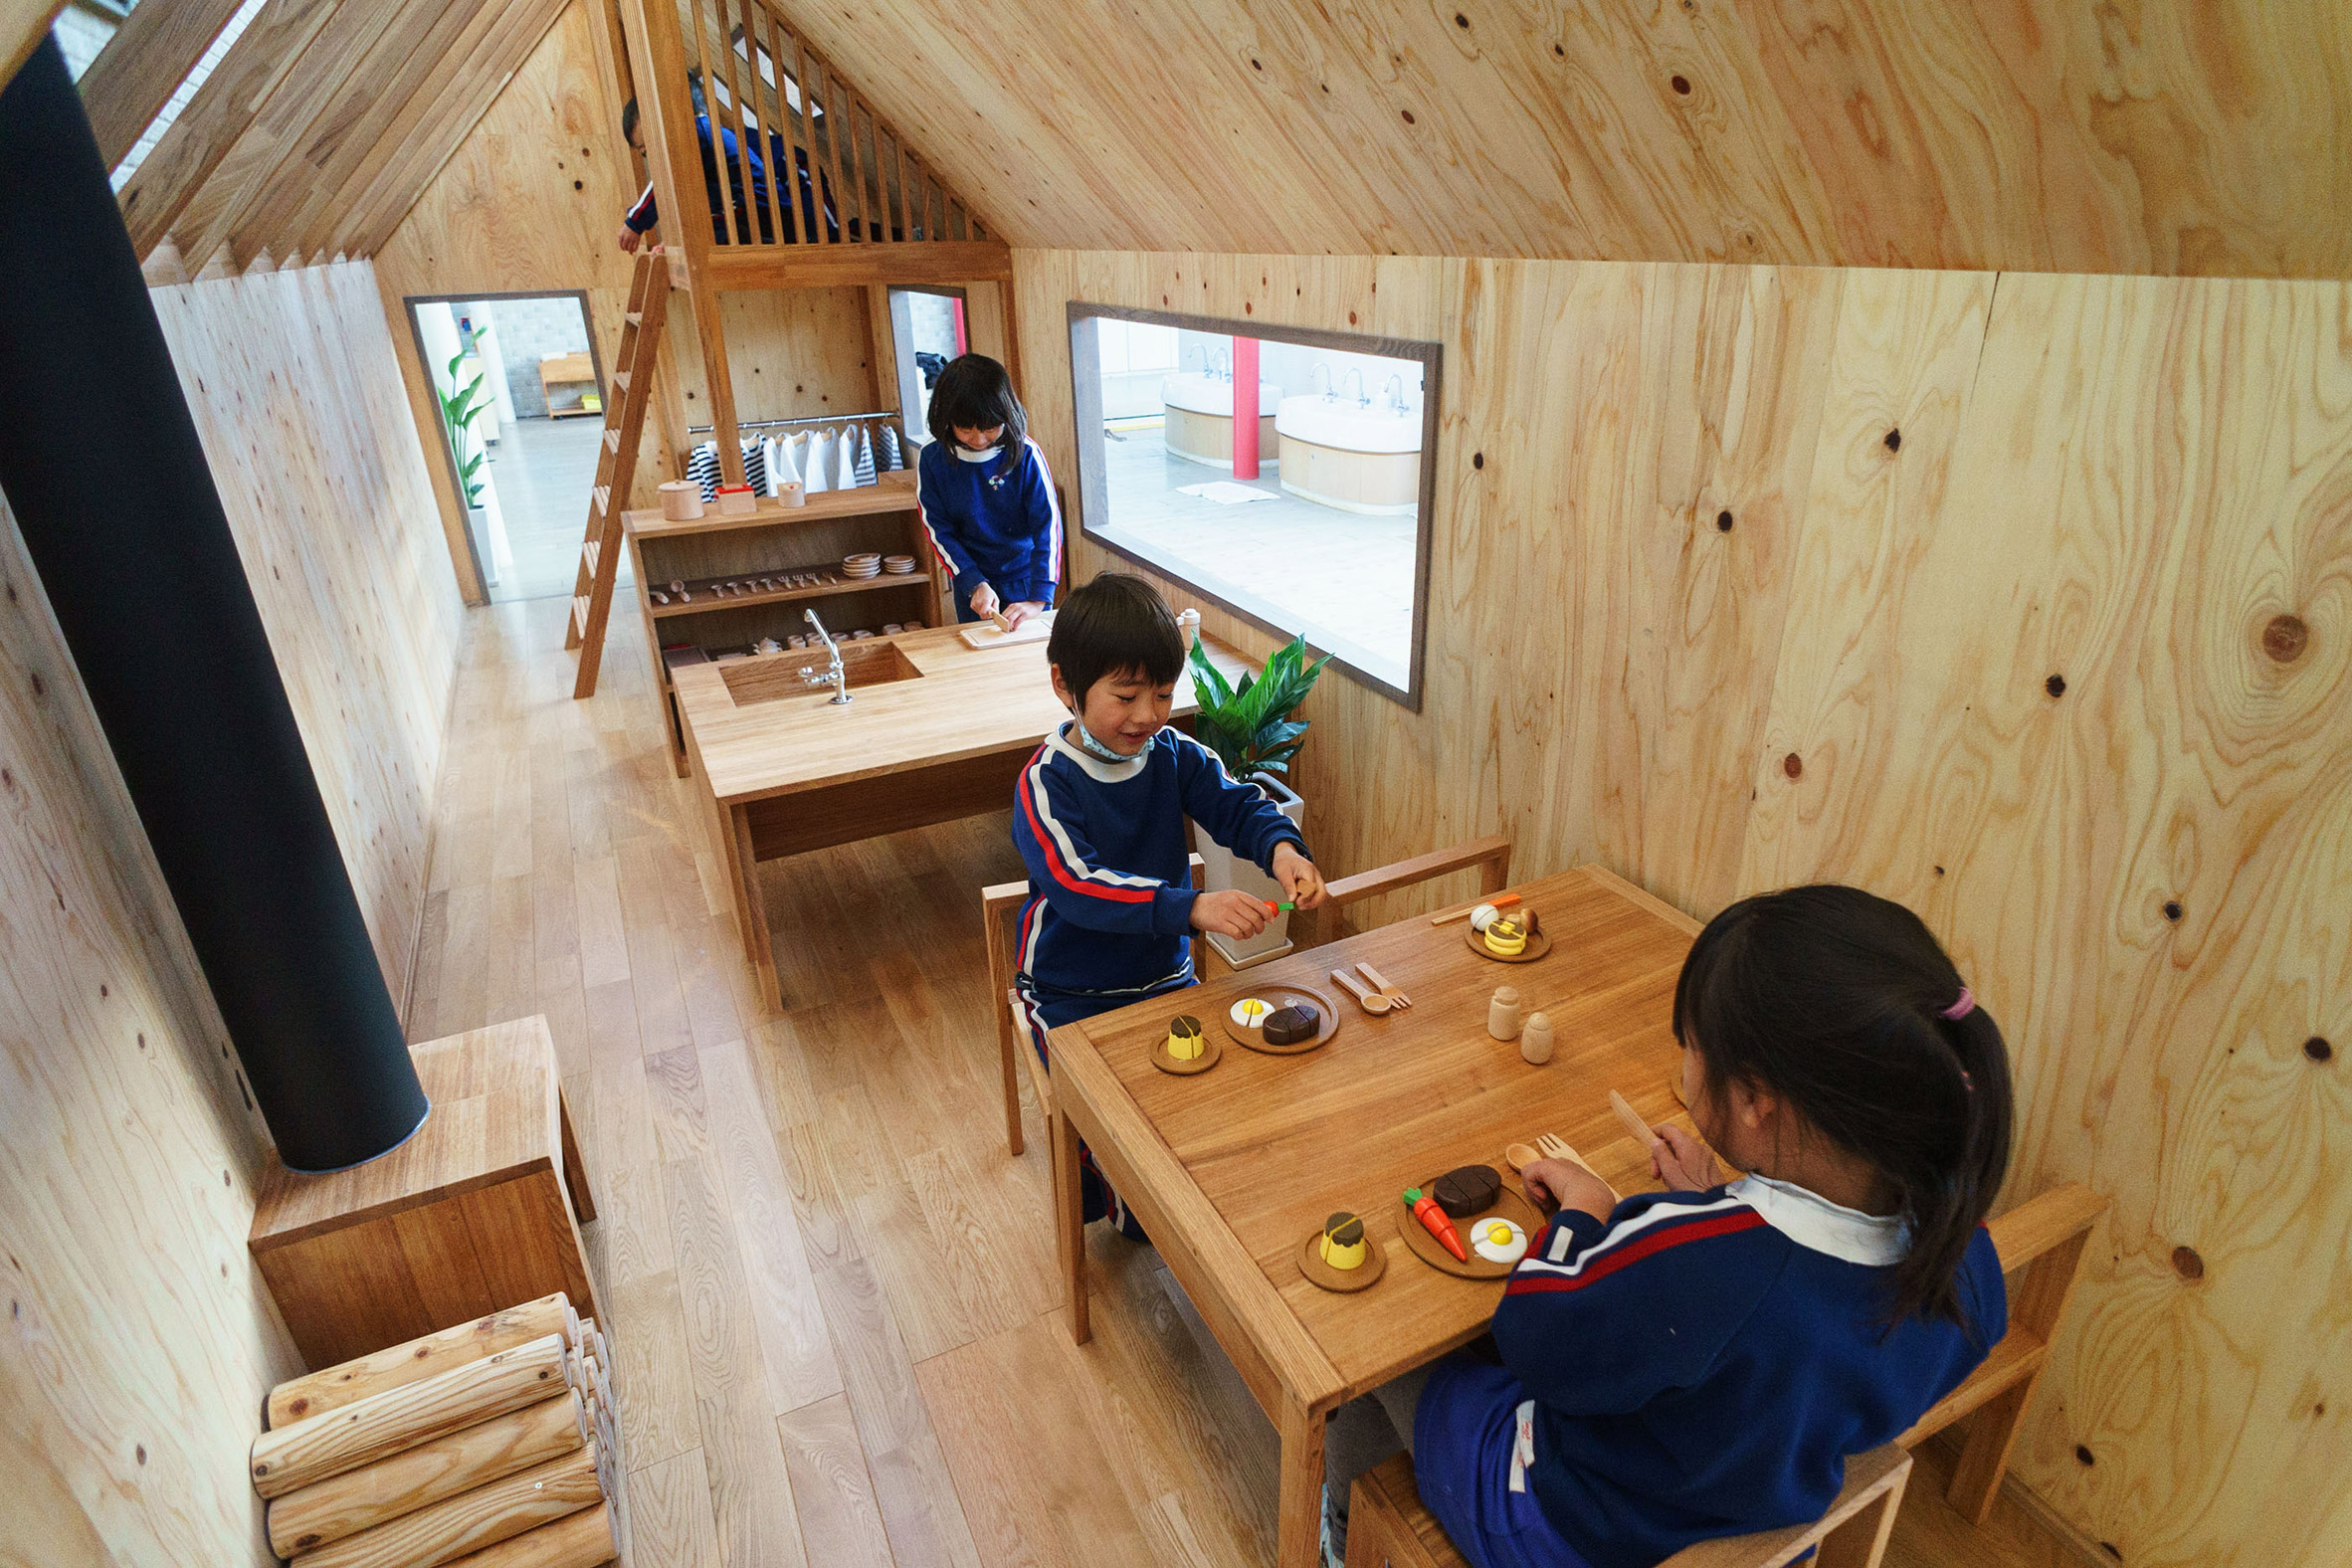 Tiny house for playing house added to Japanese kindergarten Curbed